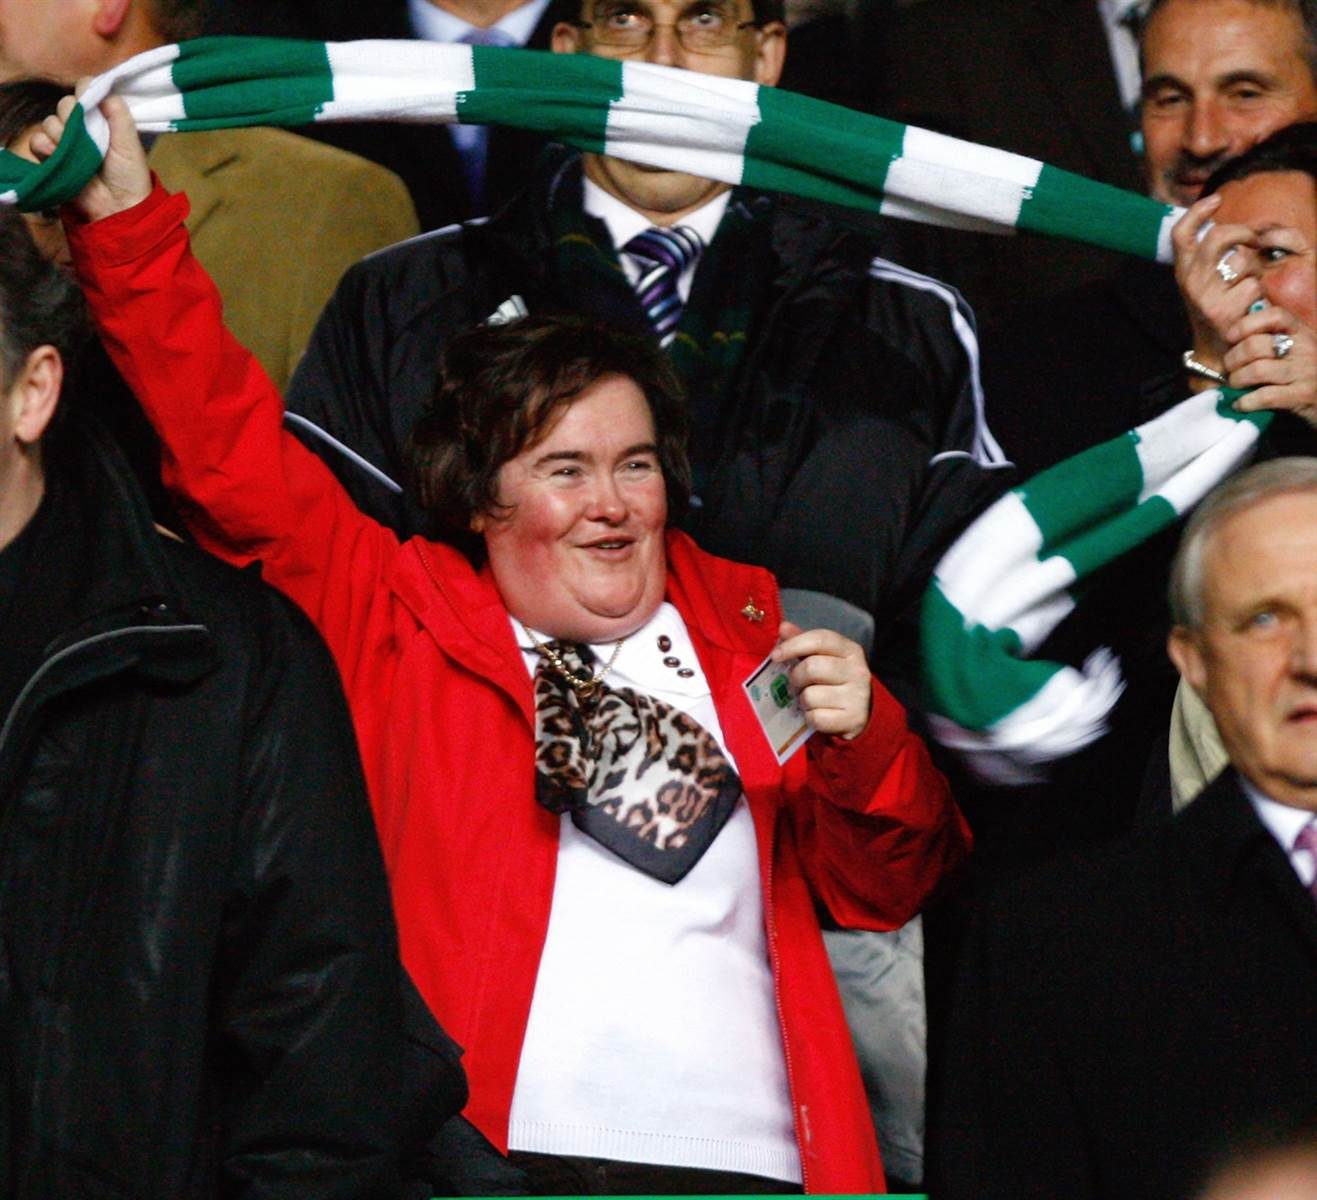 Susan Boyle Almost Blown by Winds During RARE Public Appearance image